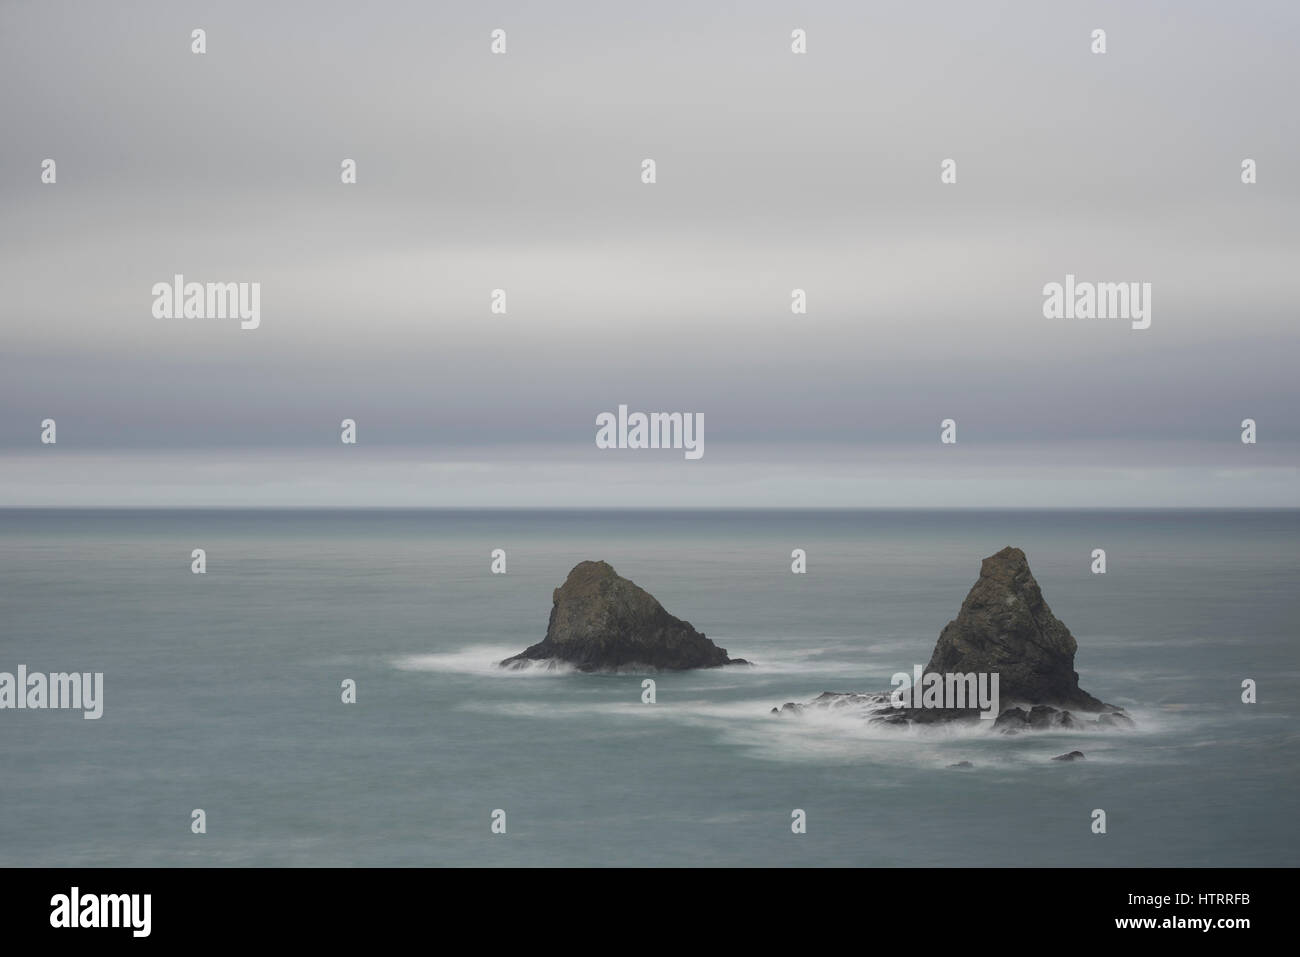 Sea stacks at Lone Ranch Beach State Park, southern Oregon coast. - Stock Image